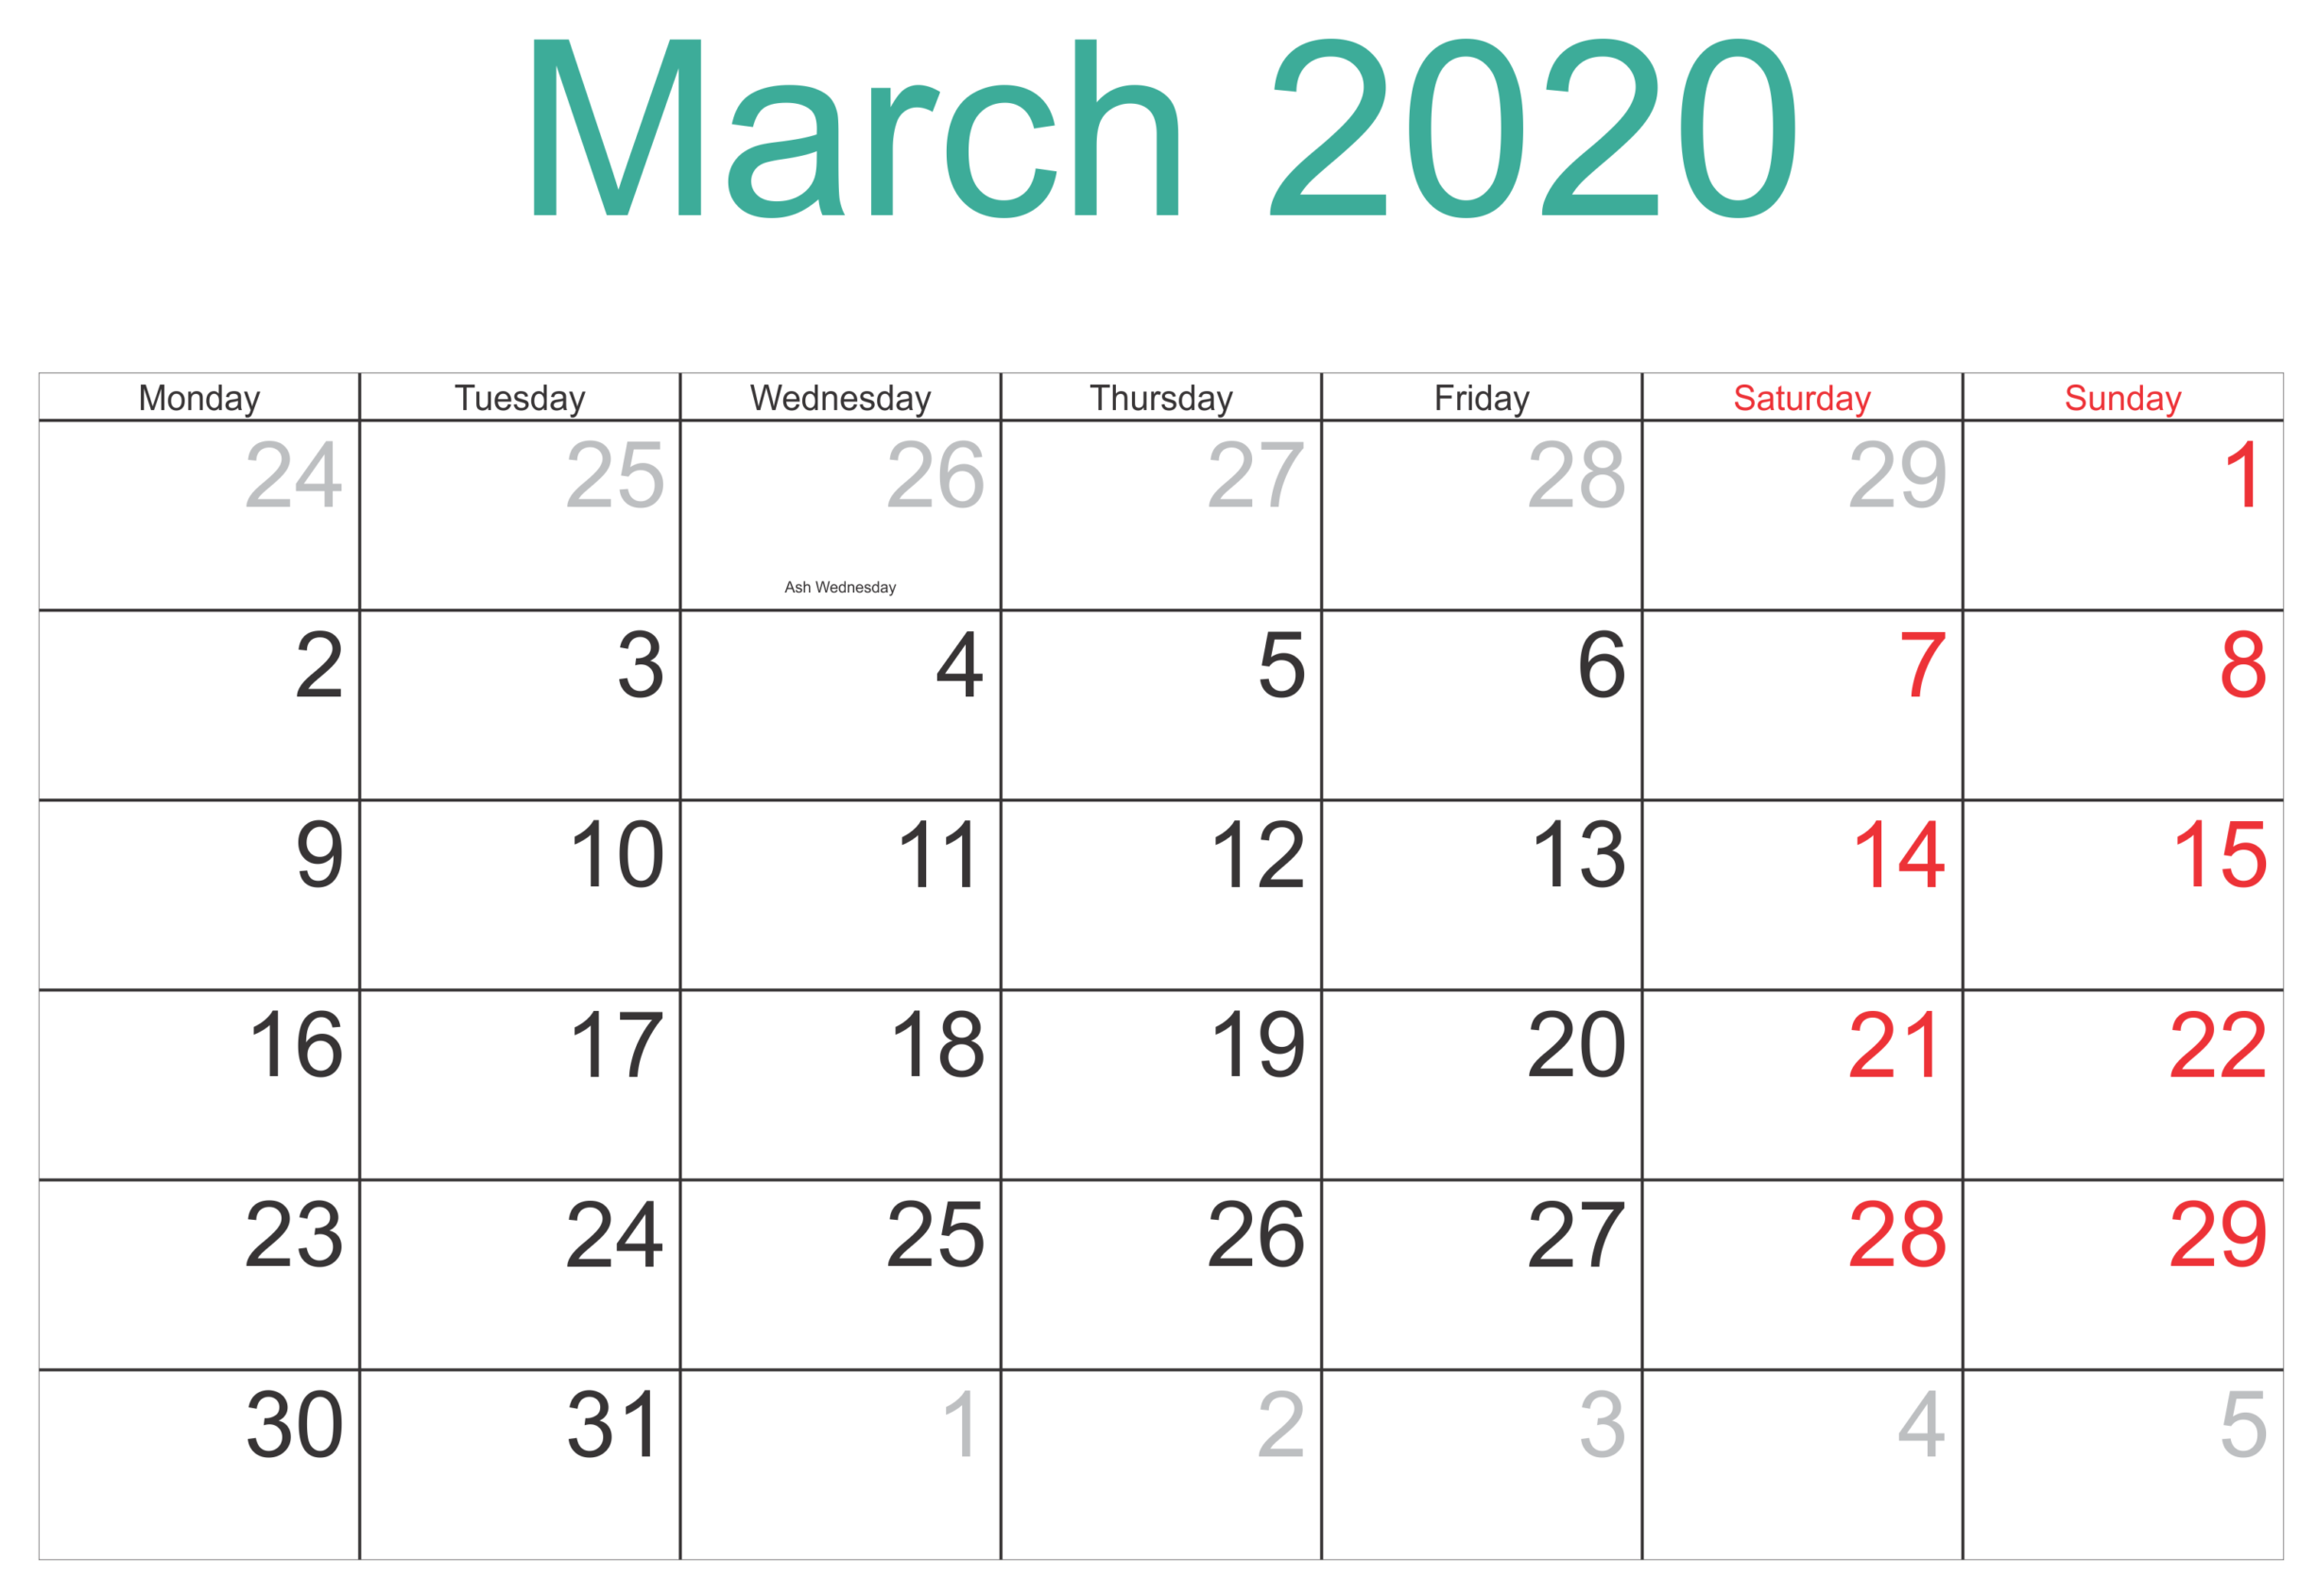 March 2020 Calendar Printable US